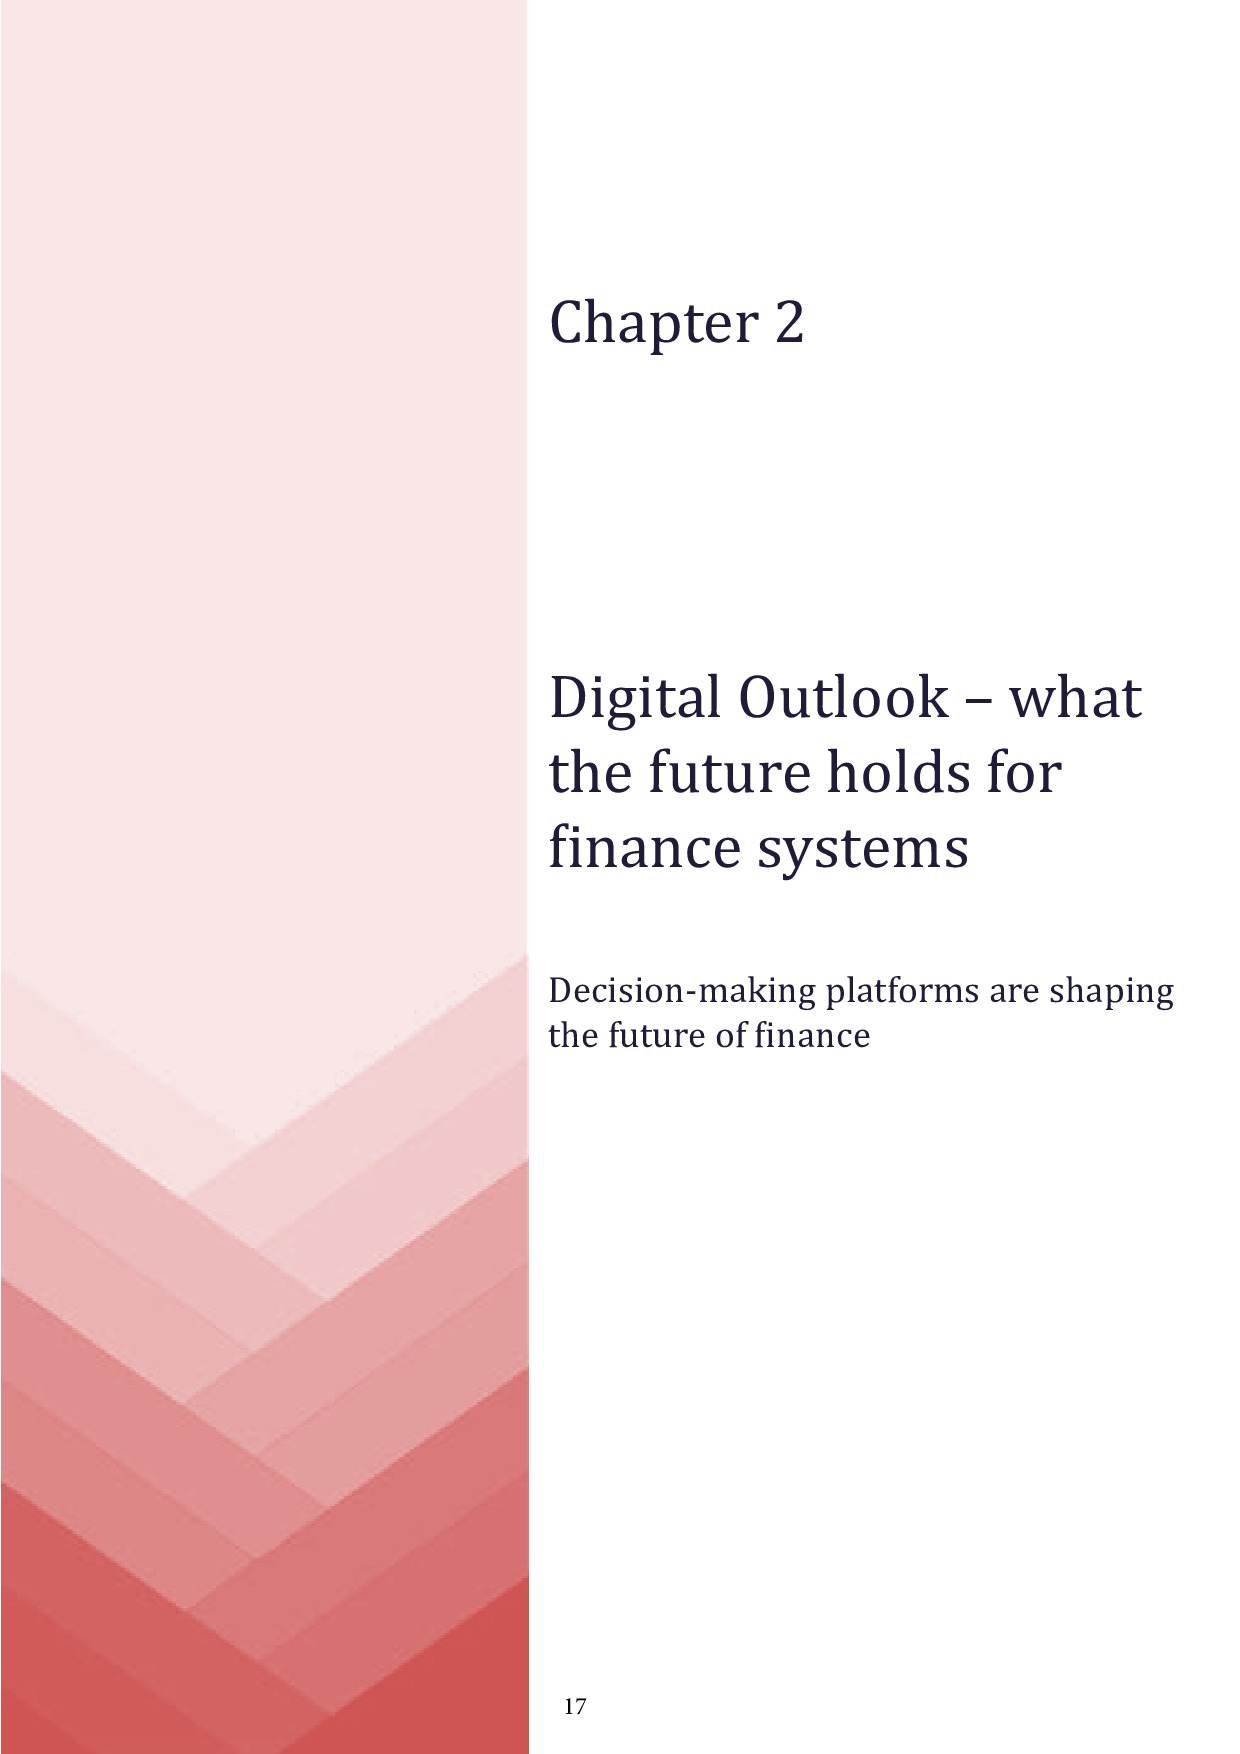 FSN - The Future of Finance Systems | Page 17